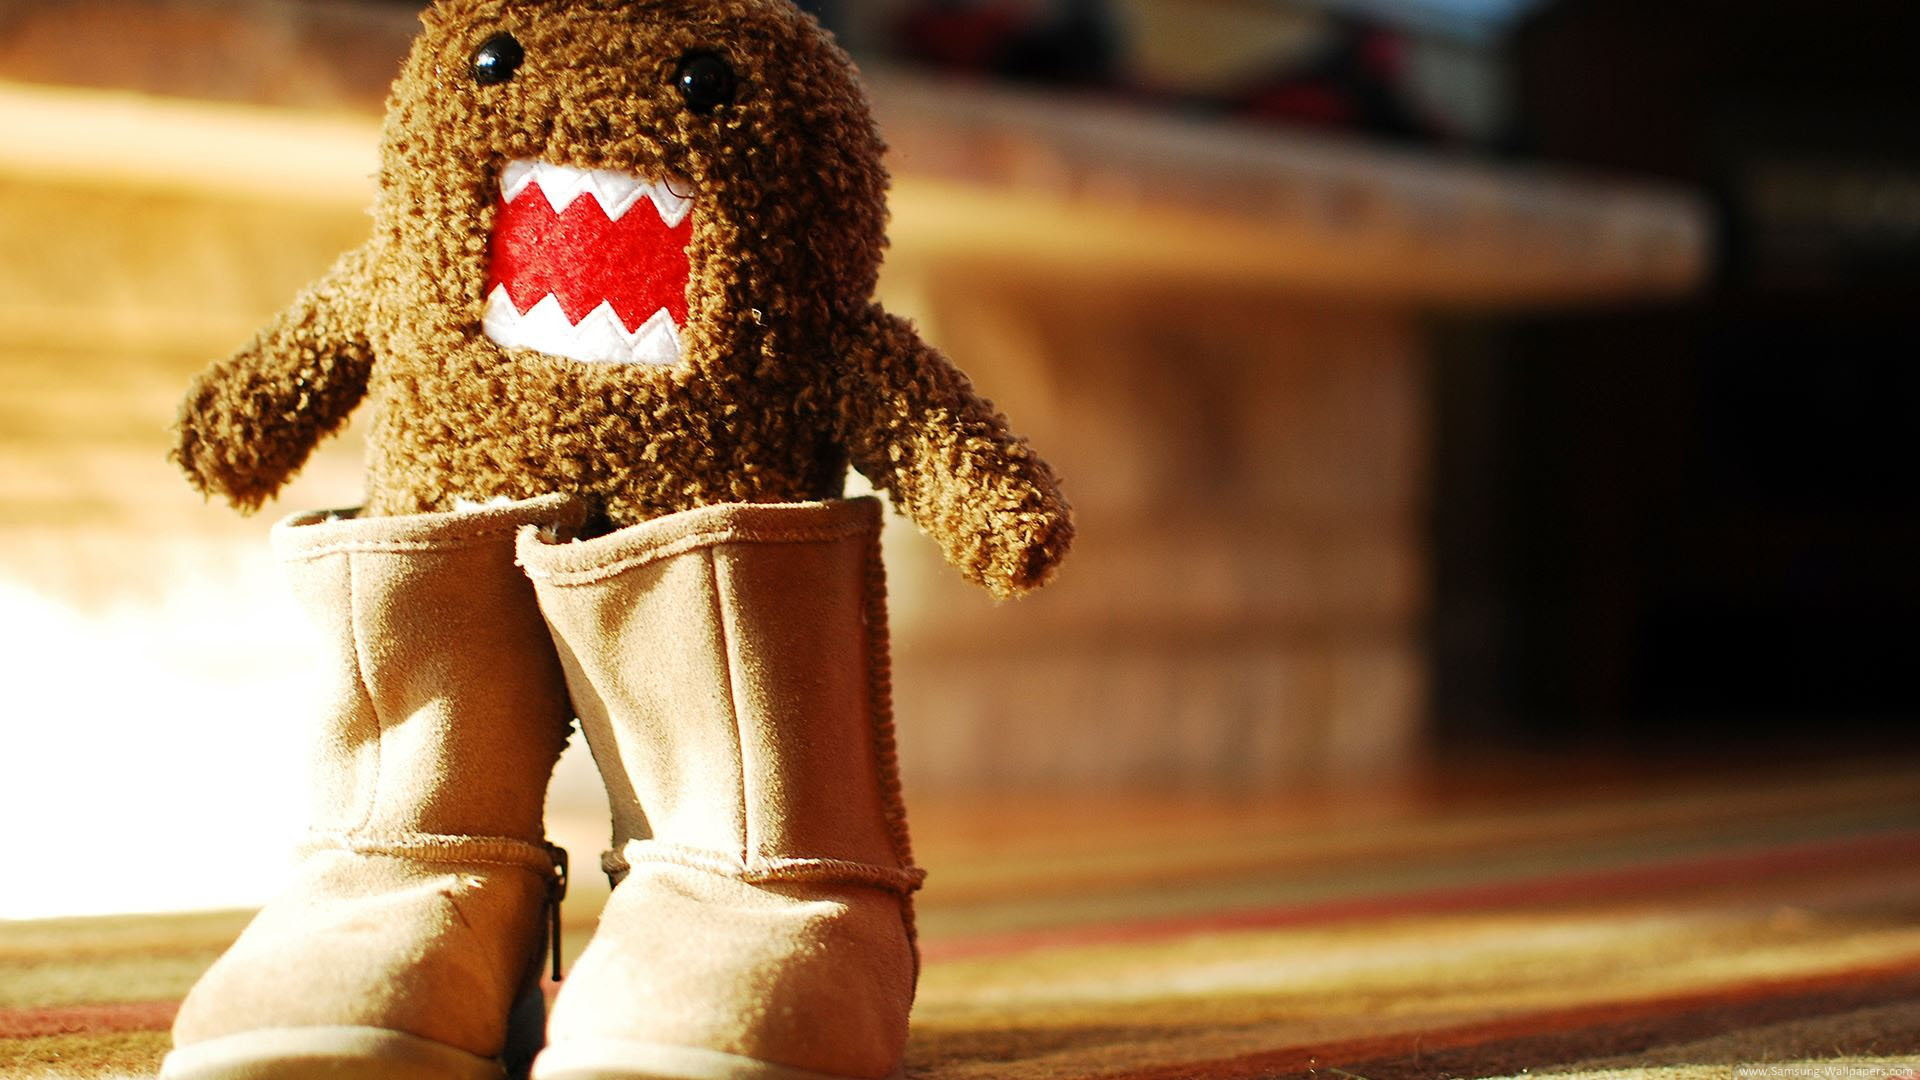 Cute Domo Wallpaper